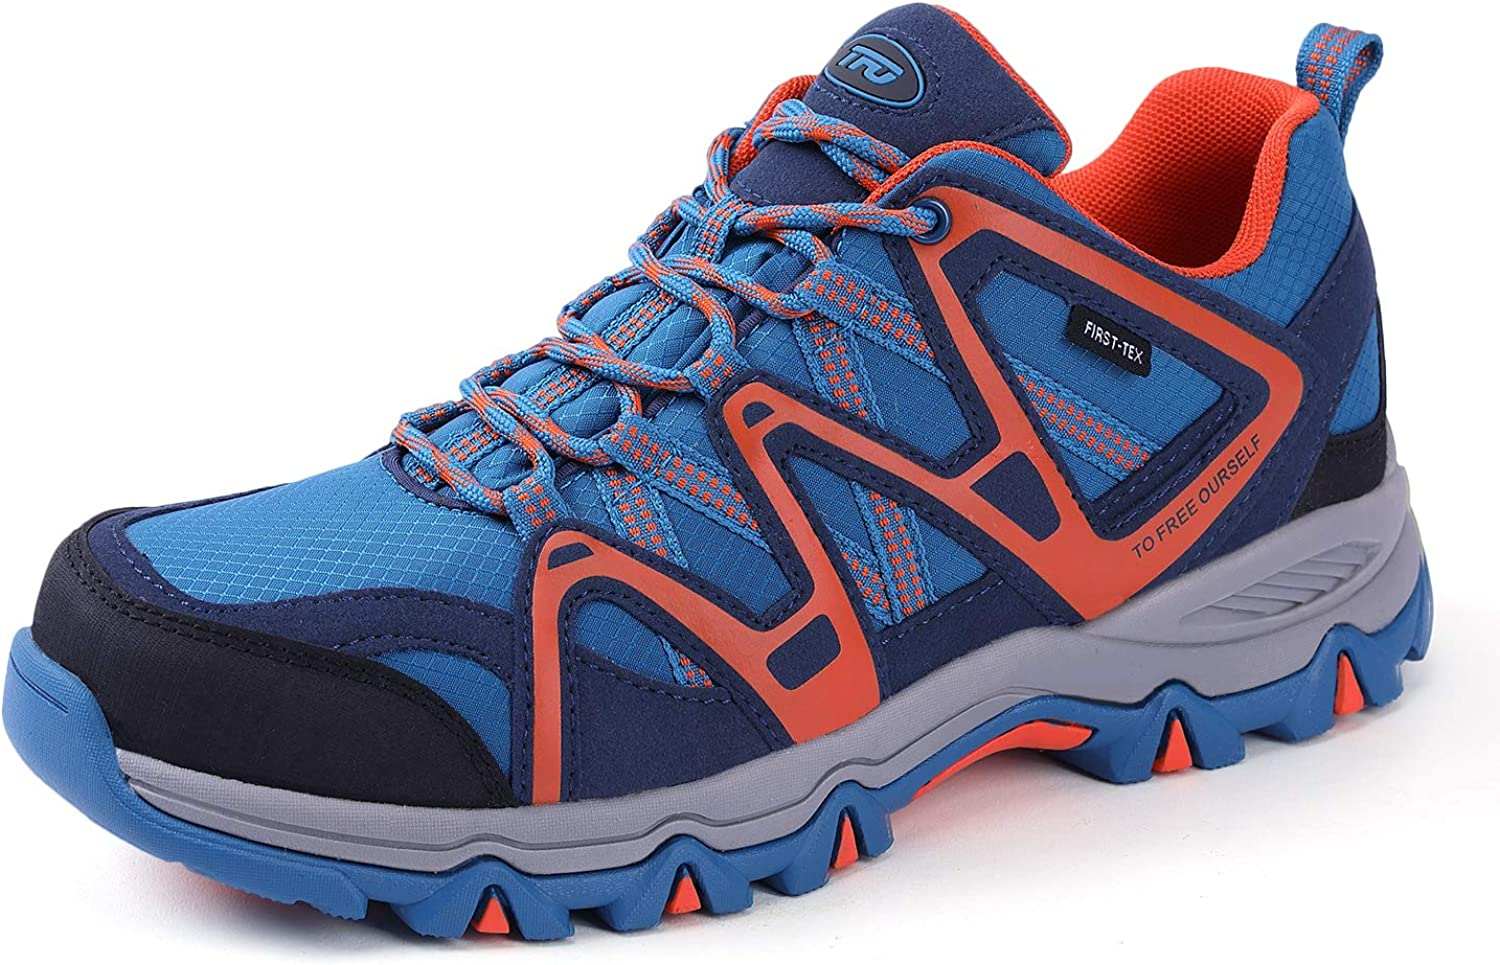 TFO Men's Breathable Walking Hiking shoes Outdoor Running Backpacking Athletic Trekking Sneakers(Size 8.5 bluee orange)